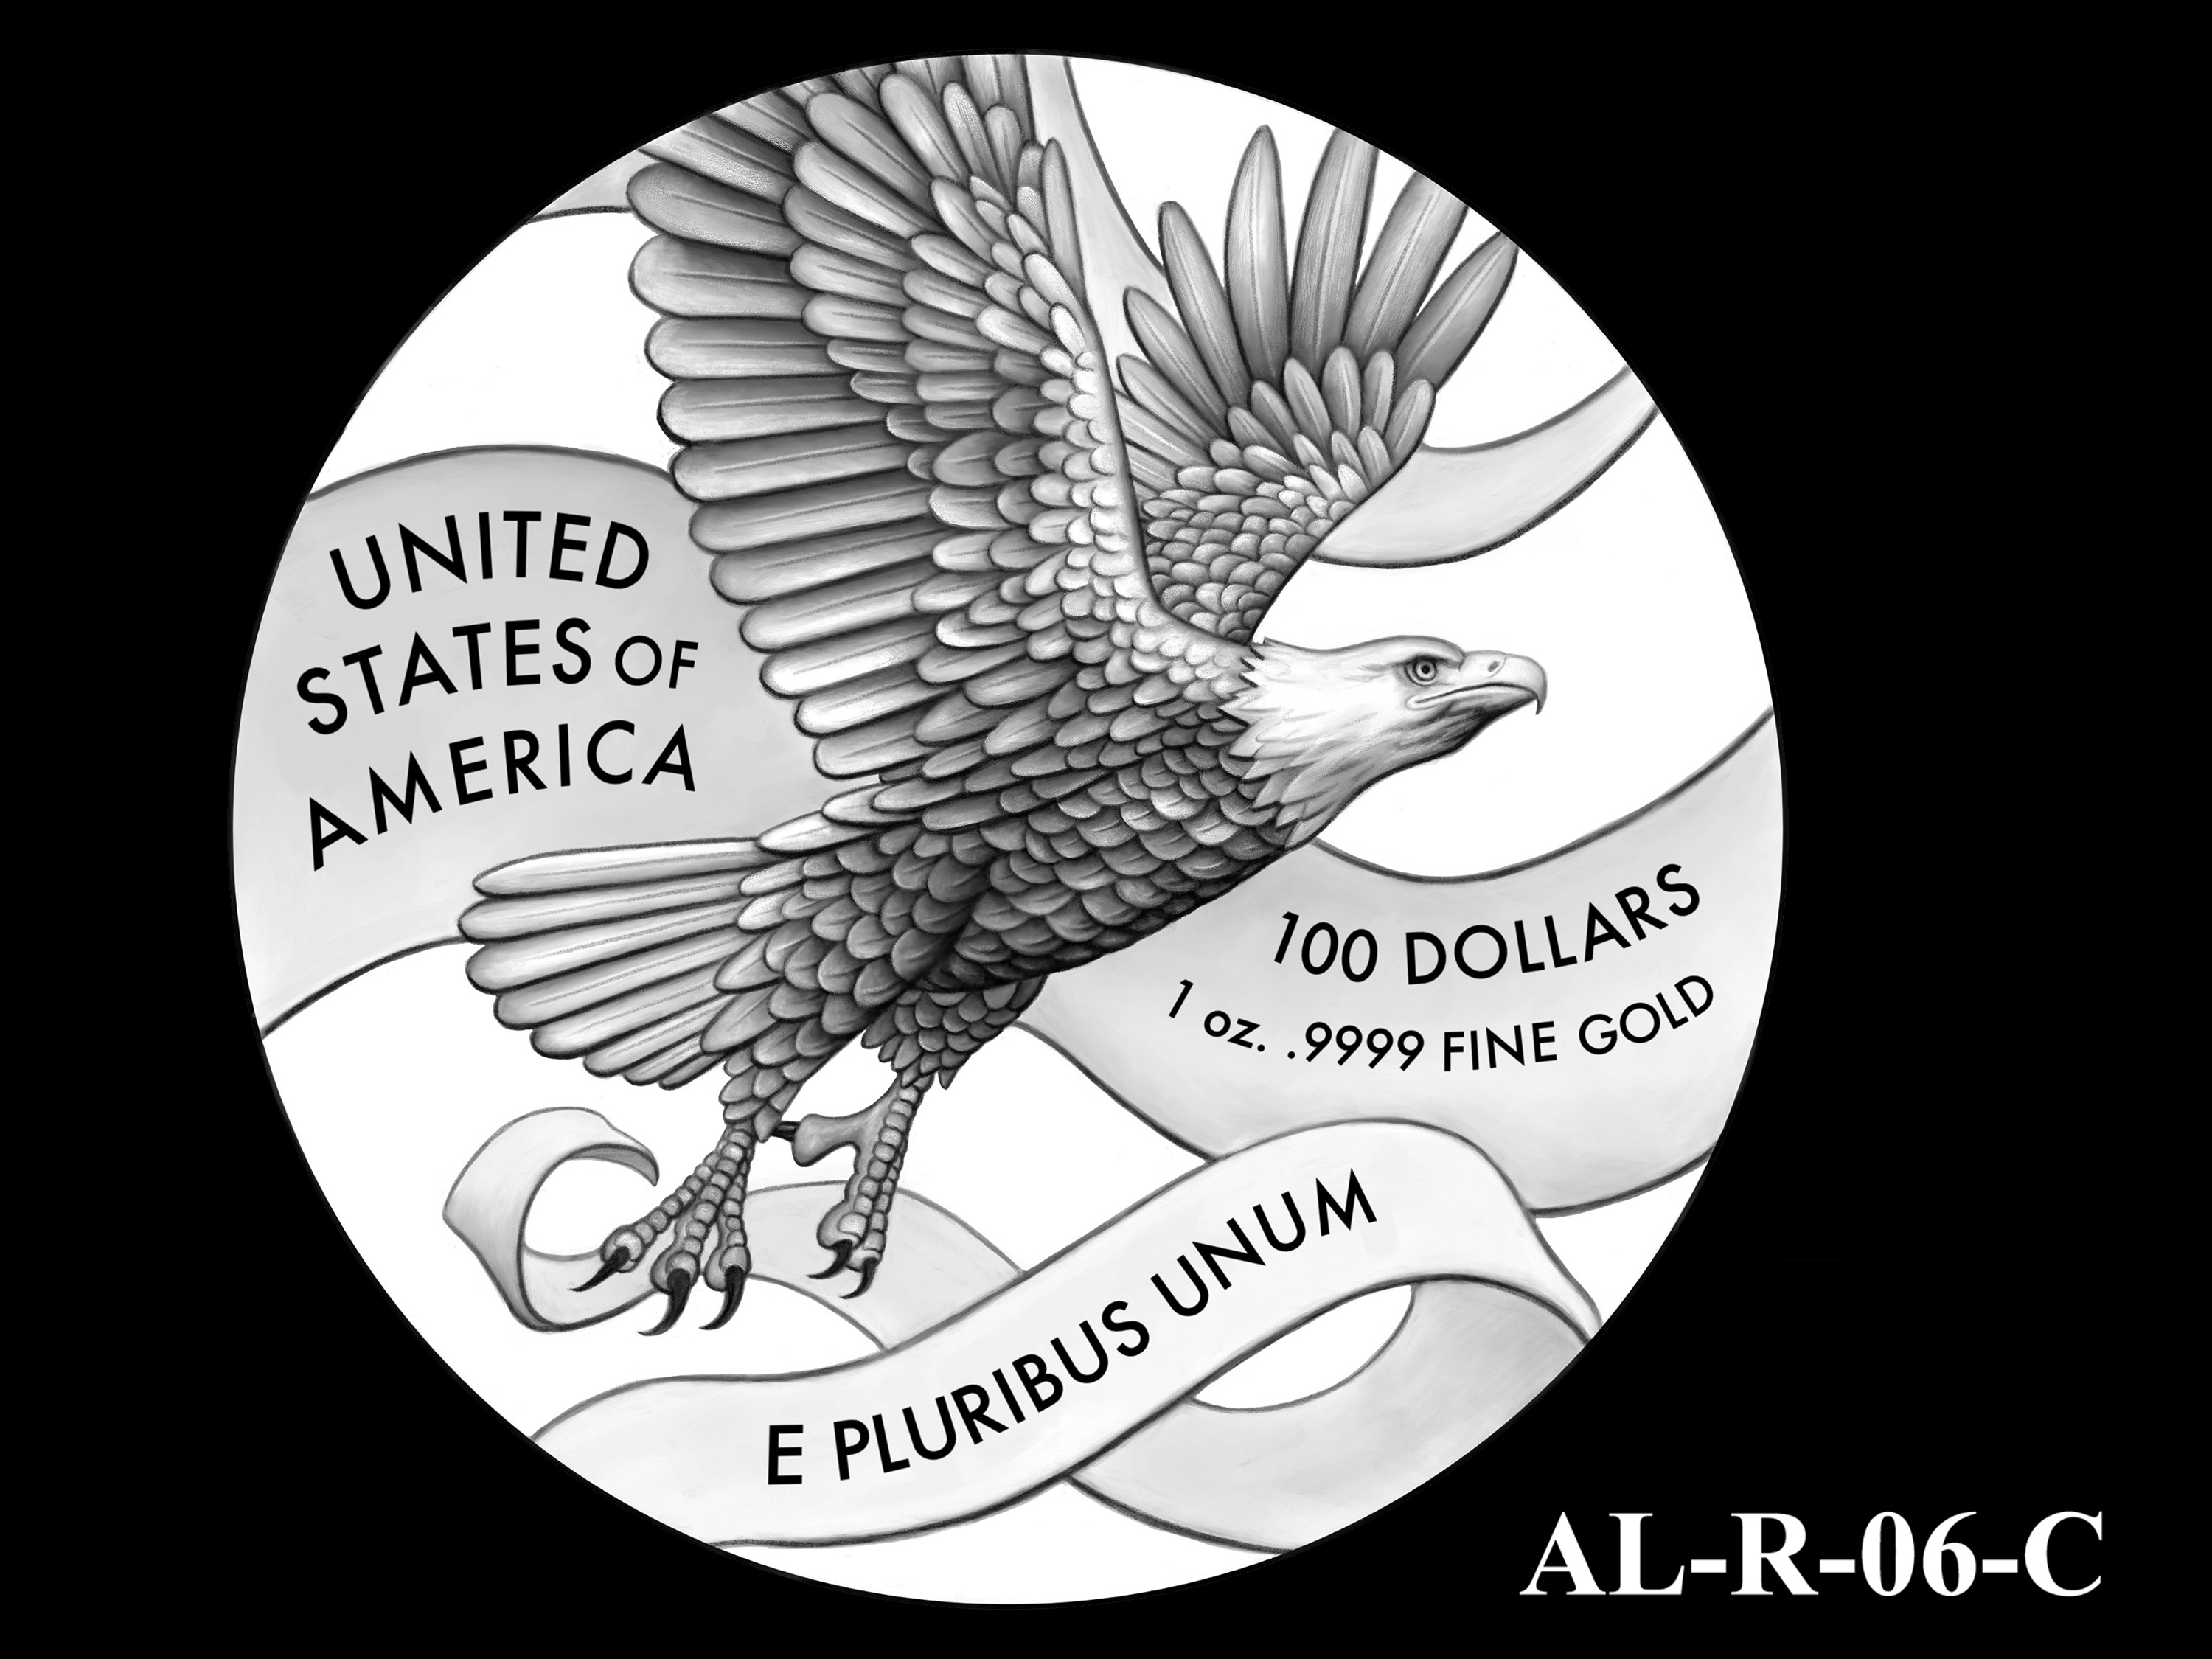 AL-R-06-C -- 2021 American Liberty Gold Coin and Silver Medal Program - Reverse